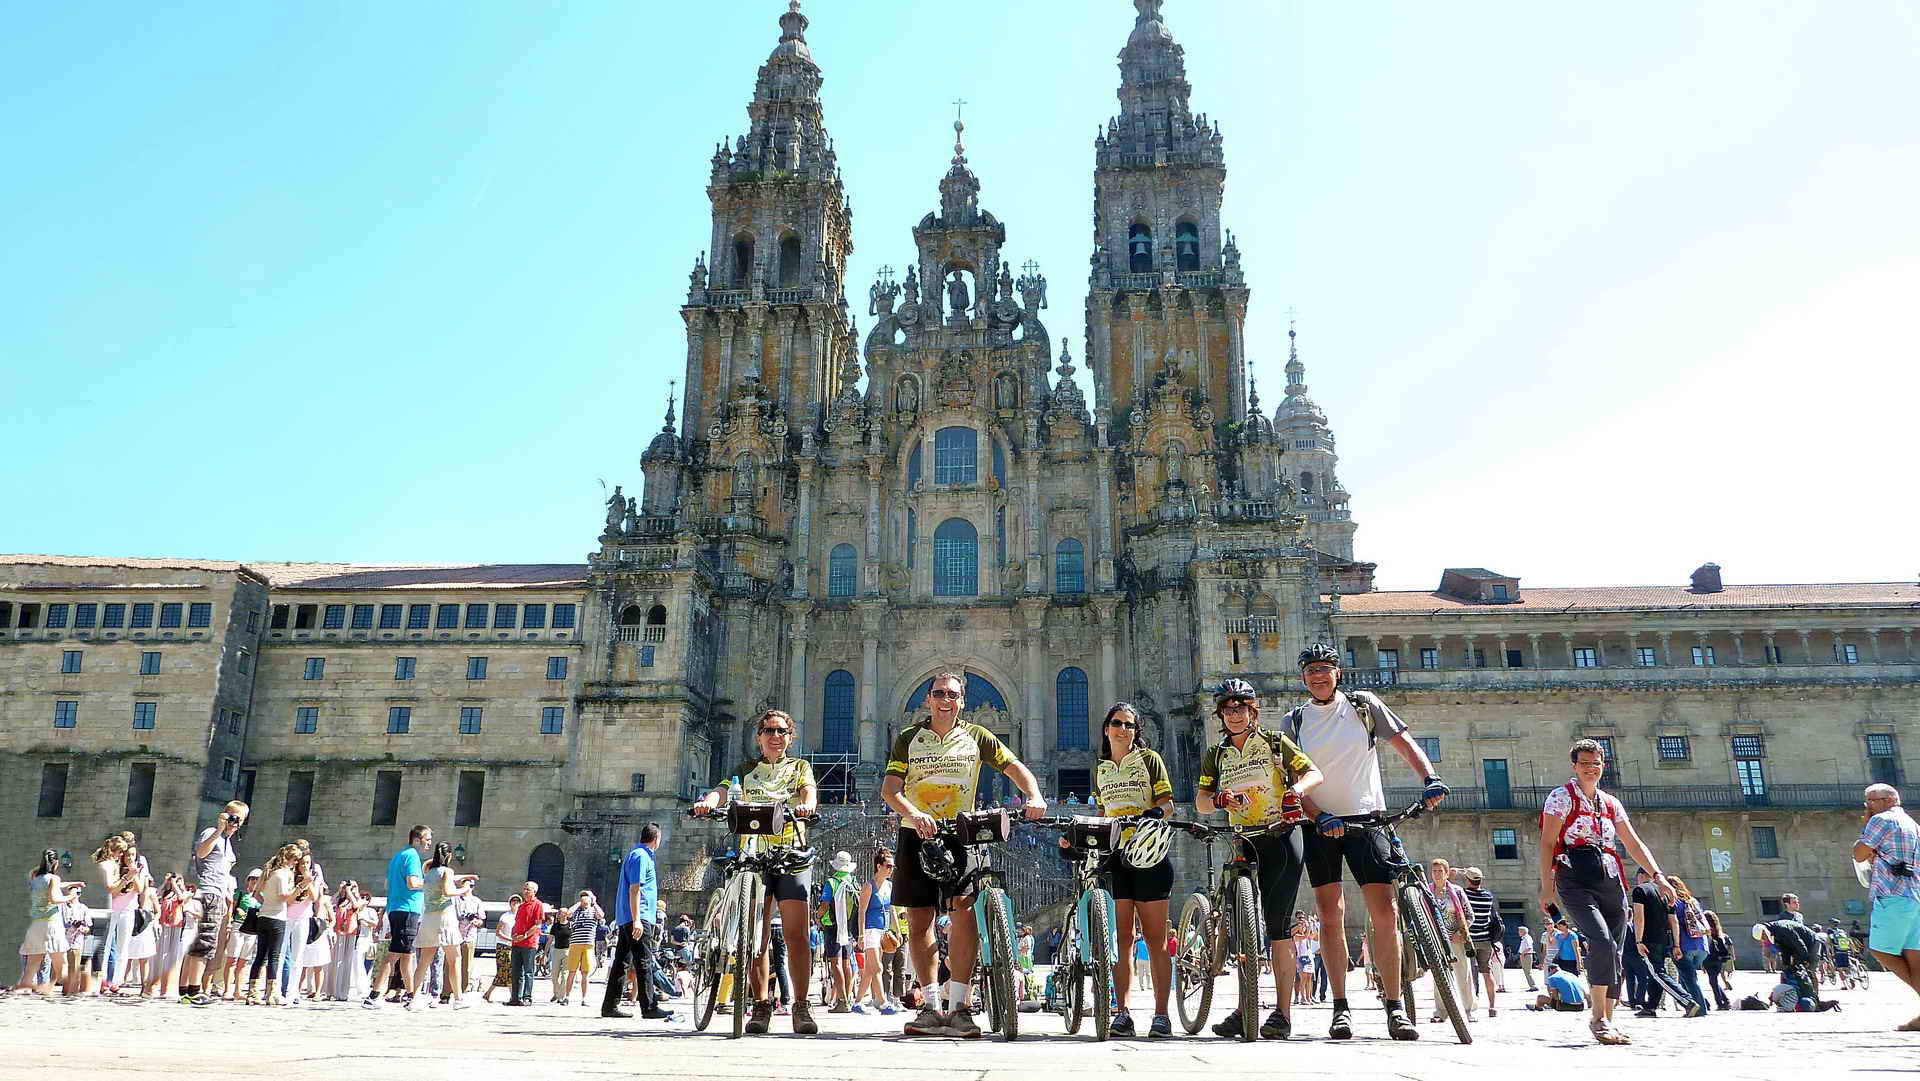 Camino Santiago Bike Cycling The Camino One Of The Oldest Pilgrimage Routes Portugal